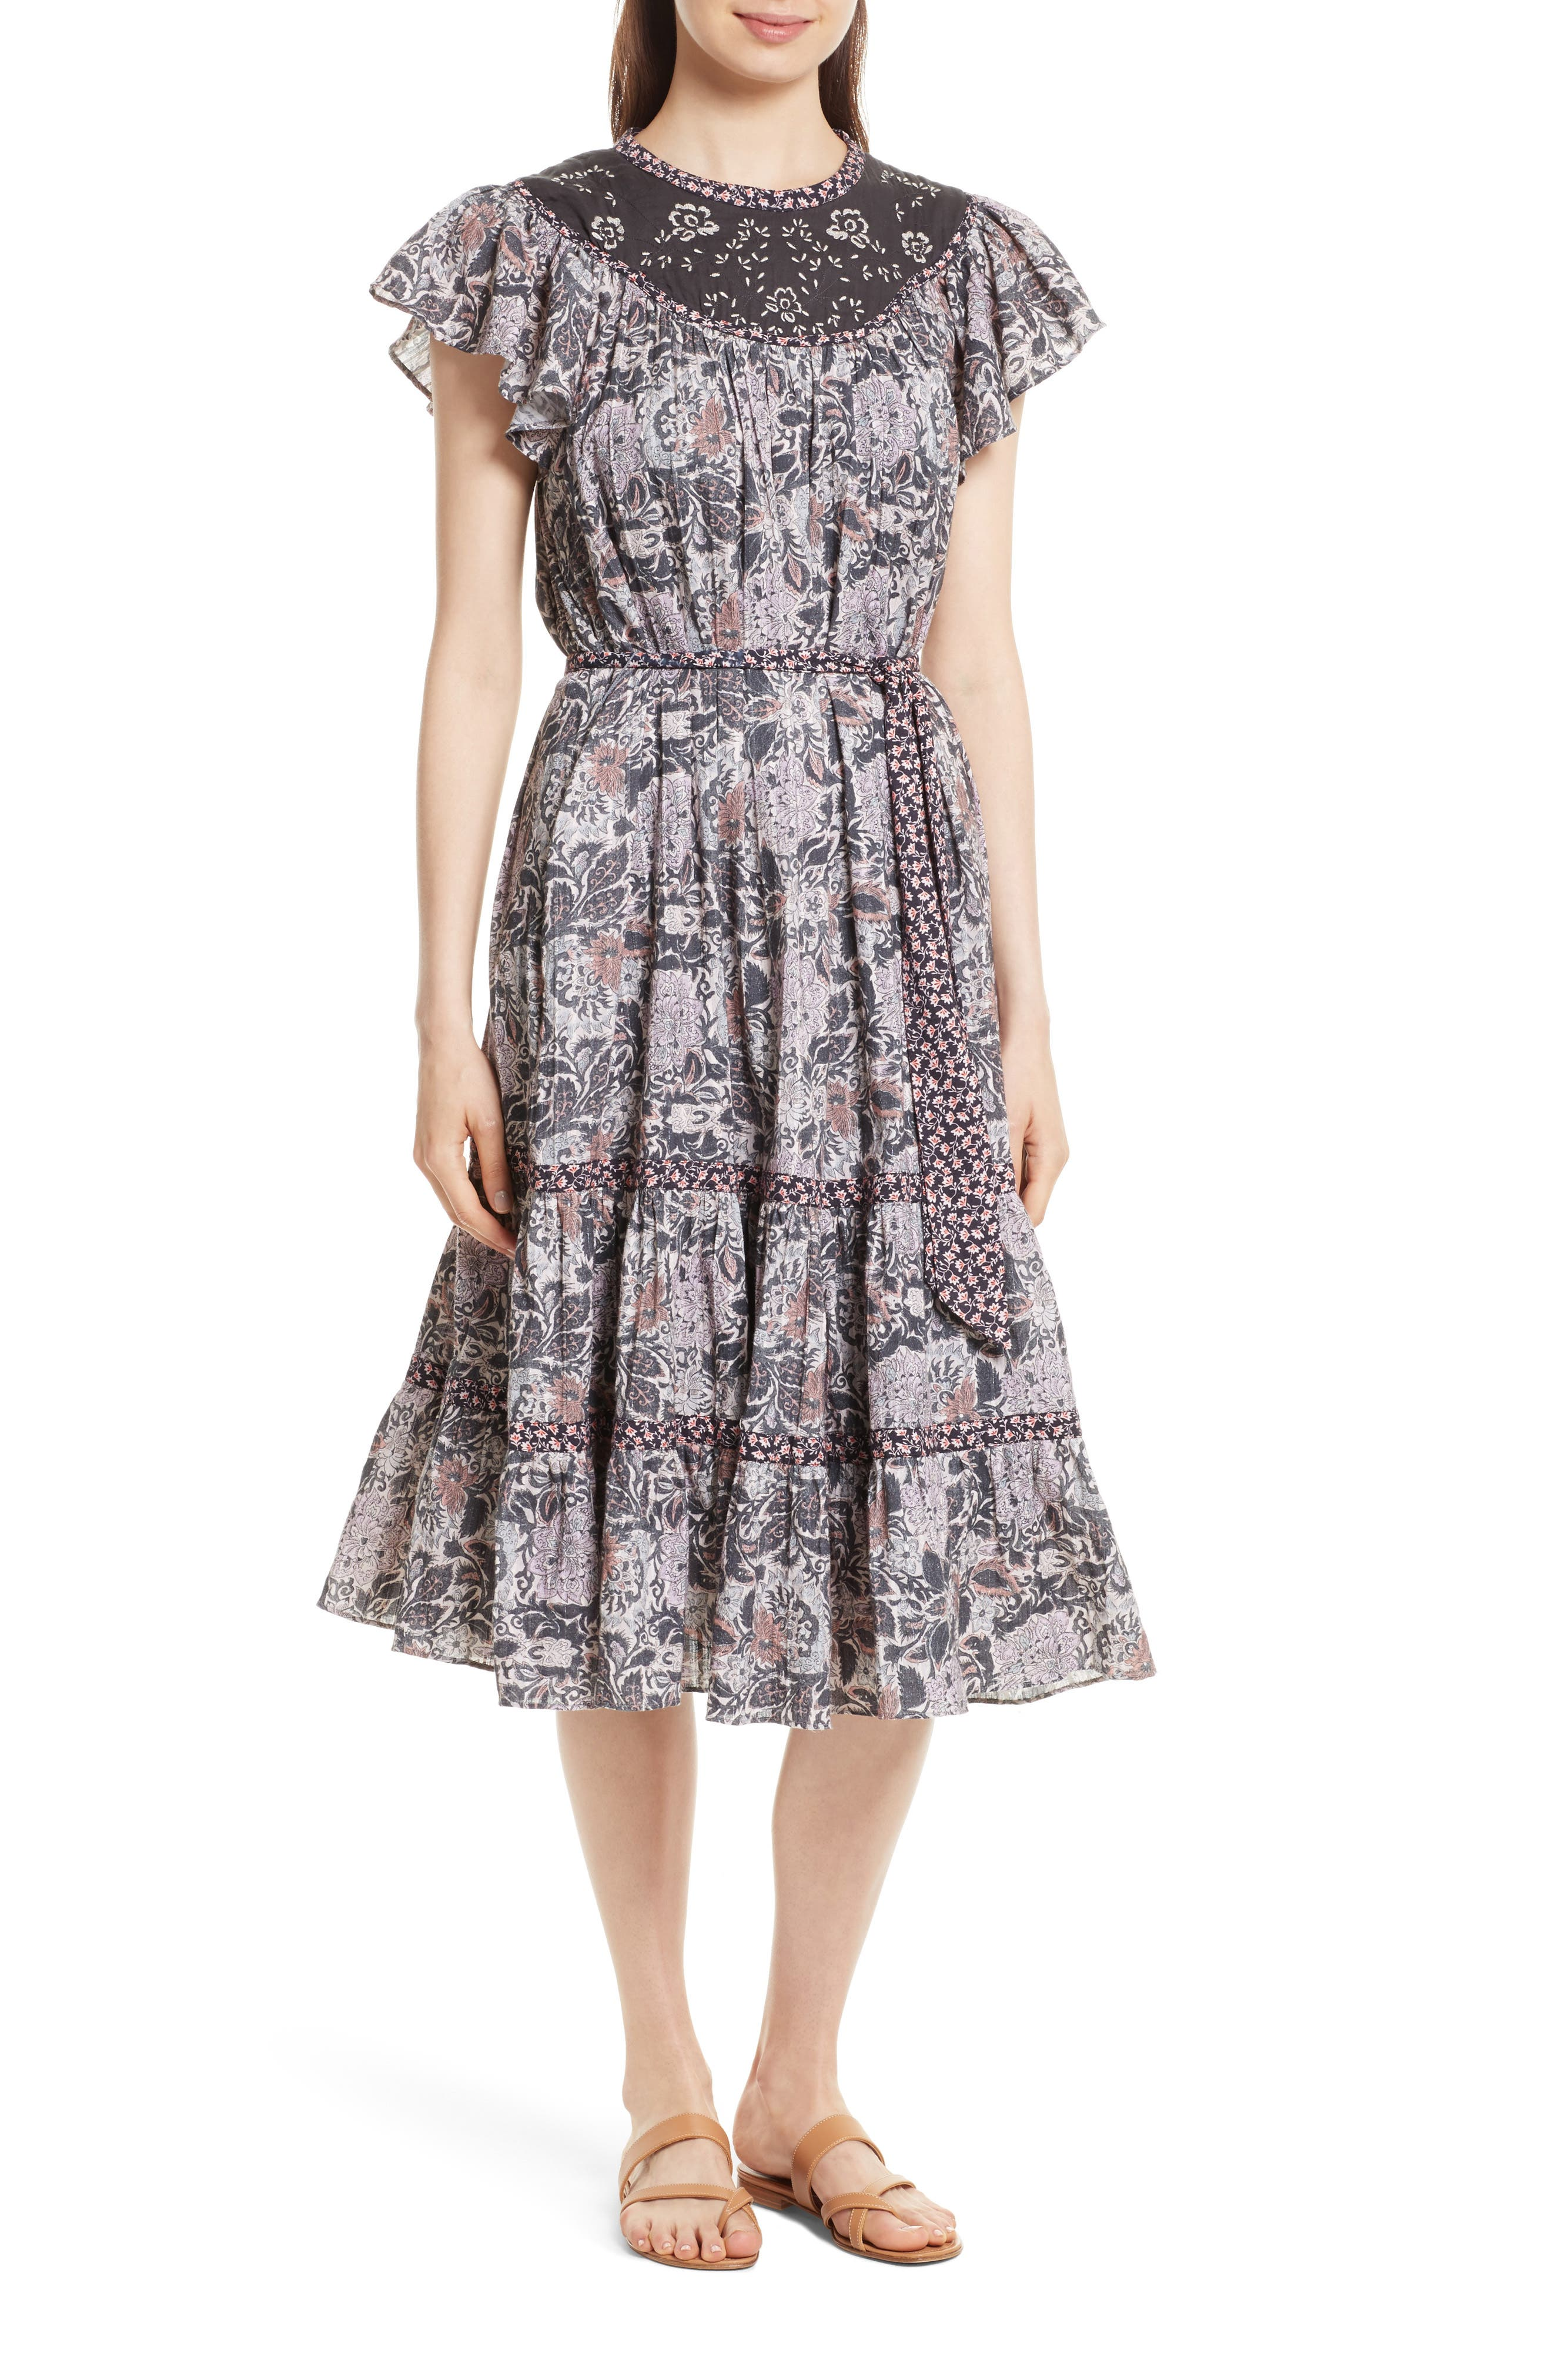 Main Image - La Vie Rebecca Taylor Indochine Embroidered Floral Dress